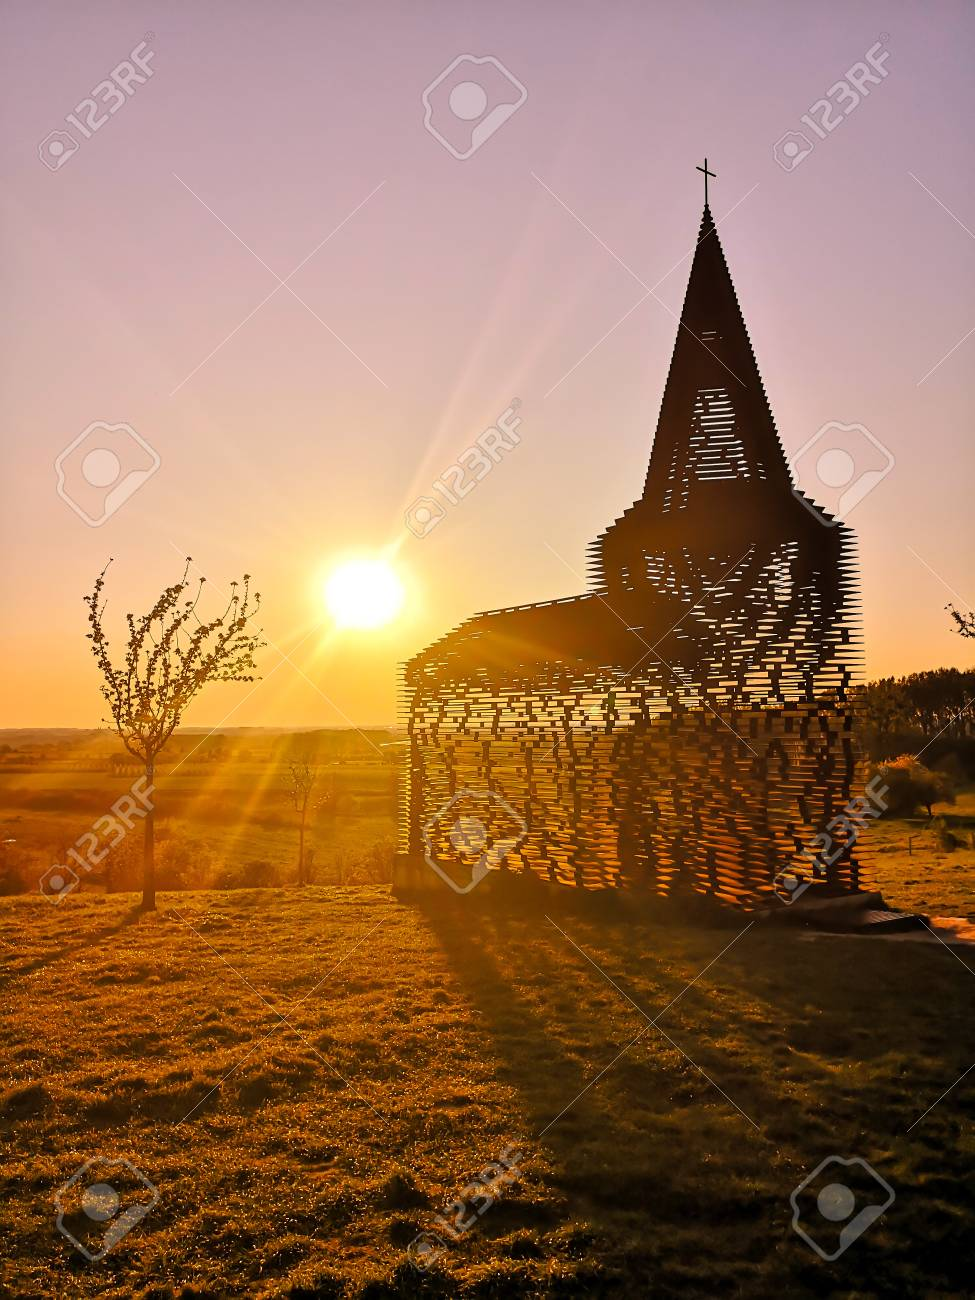 Steel see-through church in Borgloon (Hesbaye, Belgium), known as the art project Reading between the lines, during sunset - 126467860